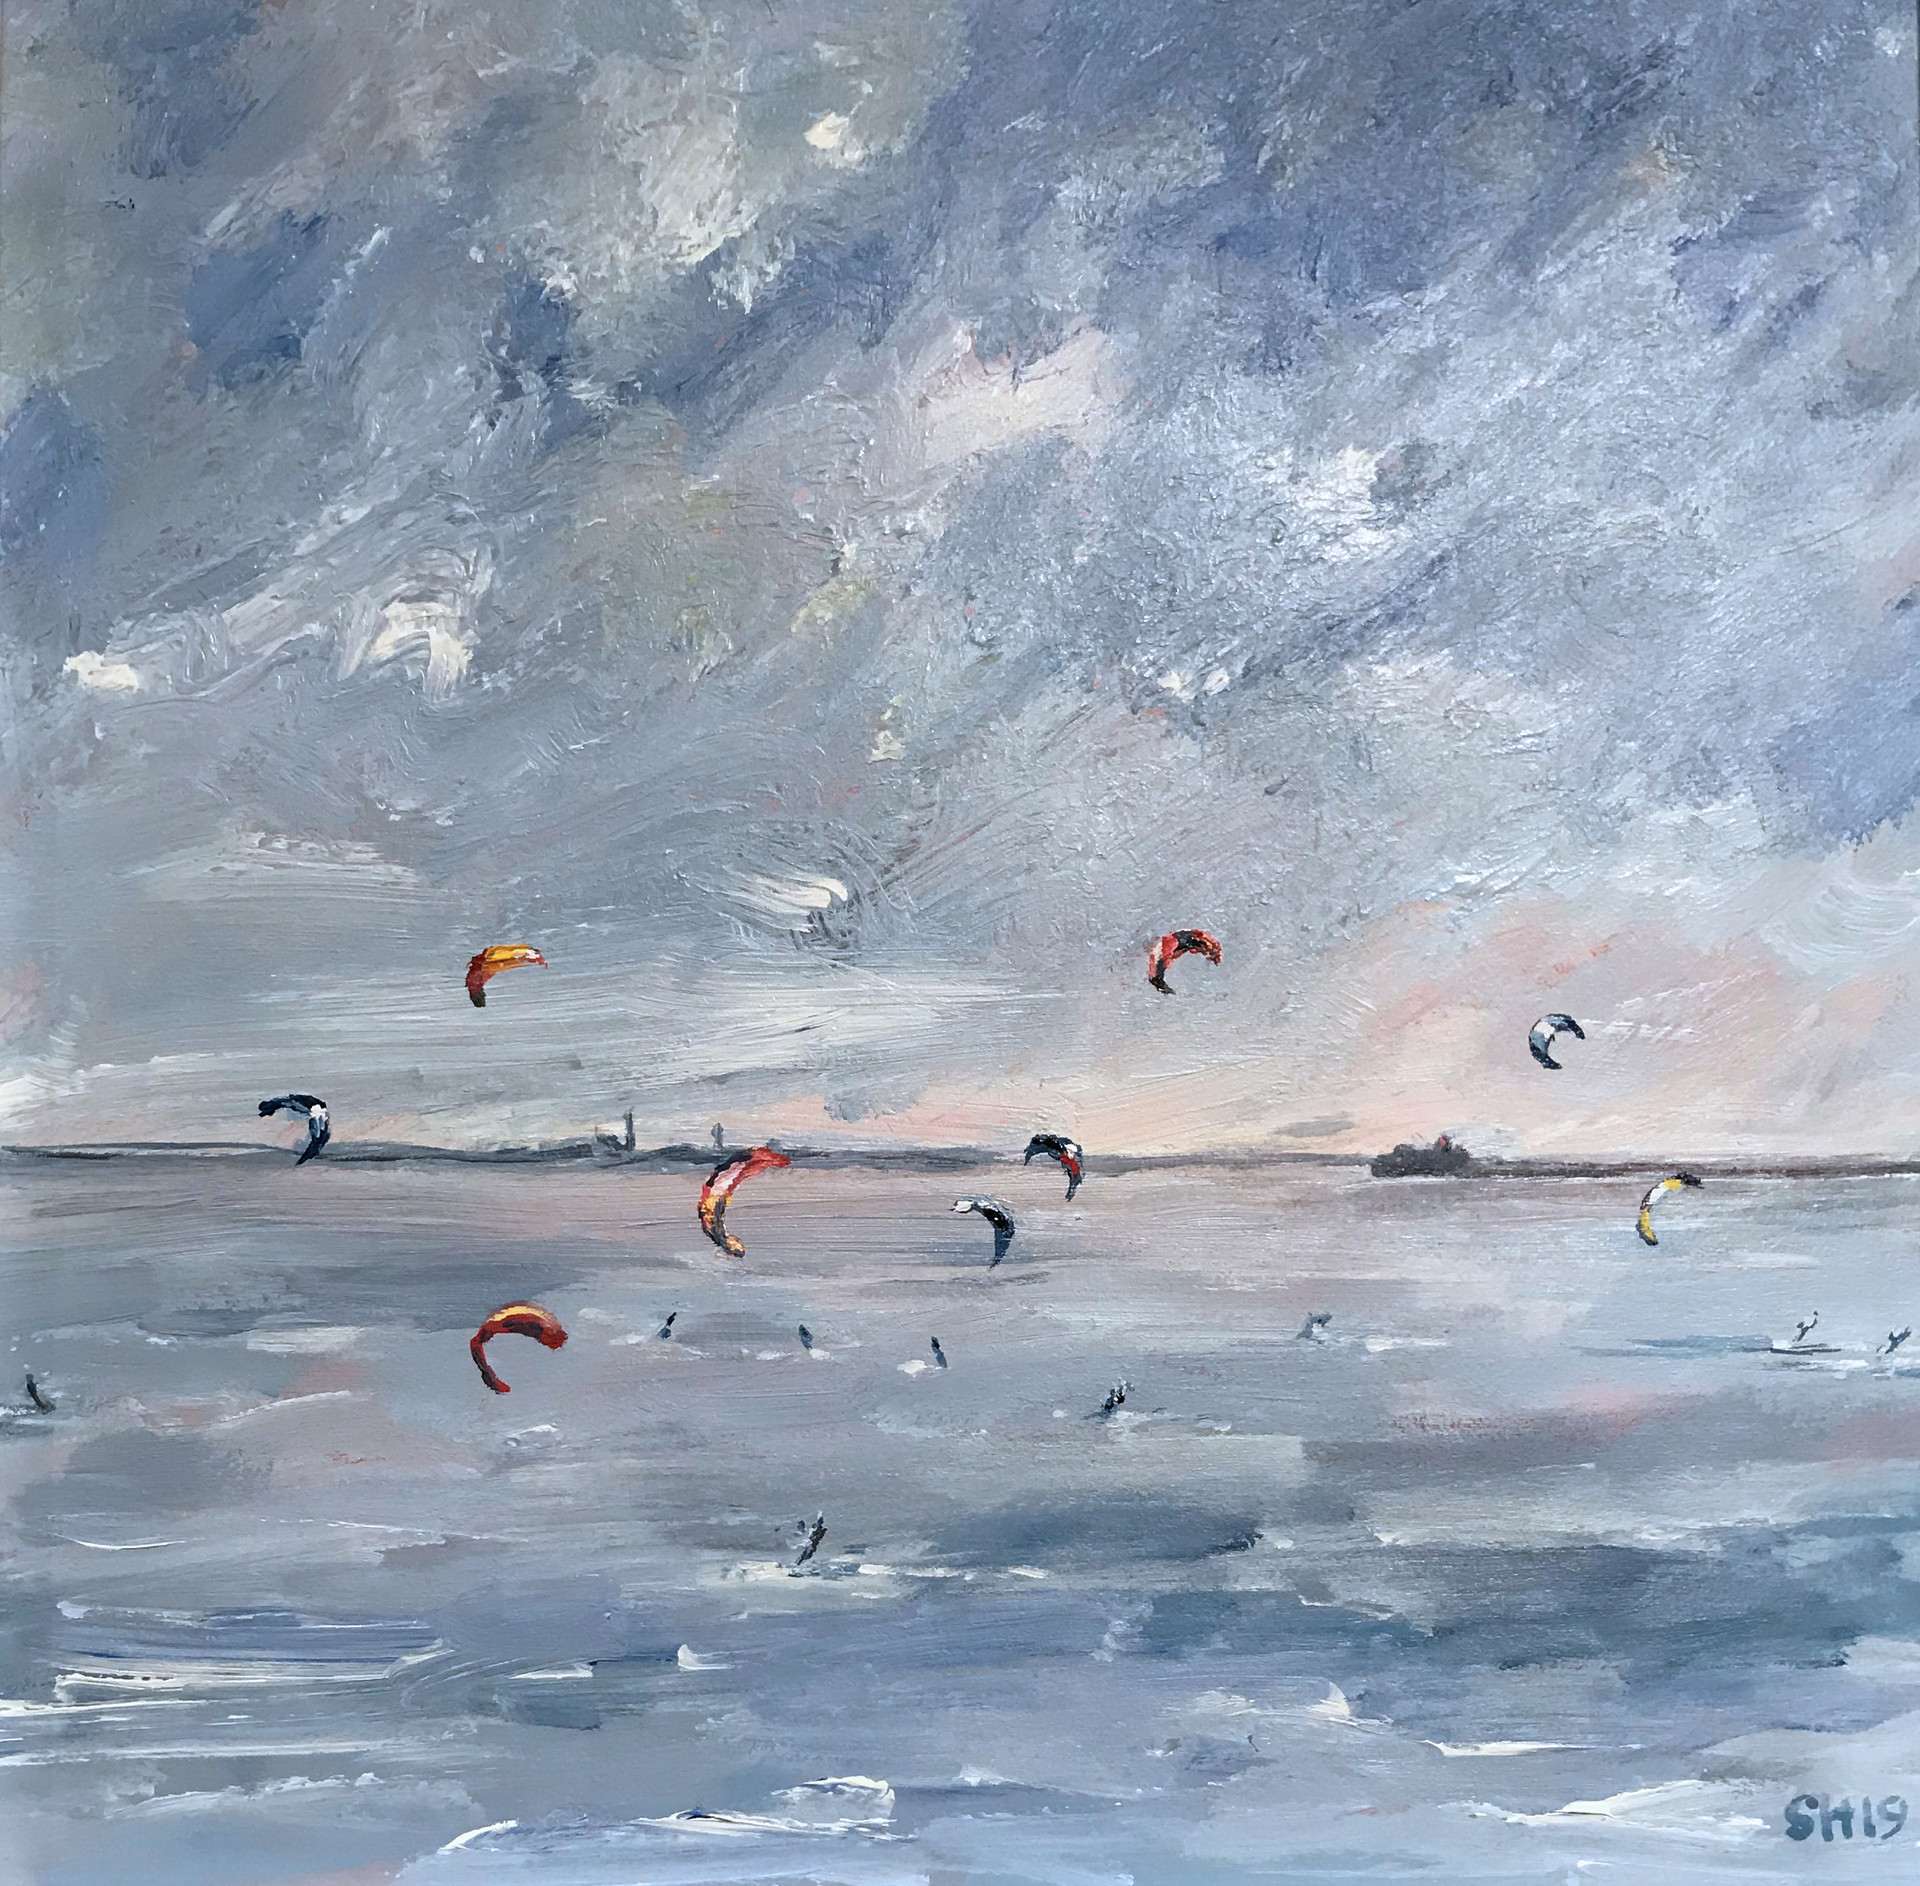 Kite Surfing in The Estuary